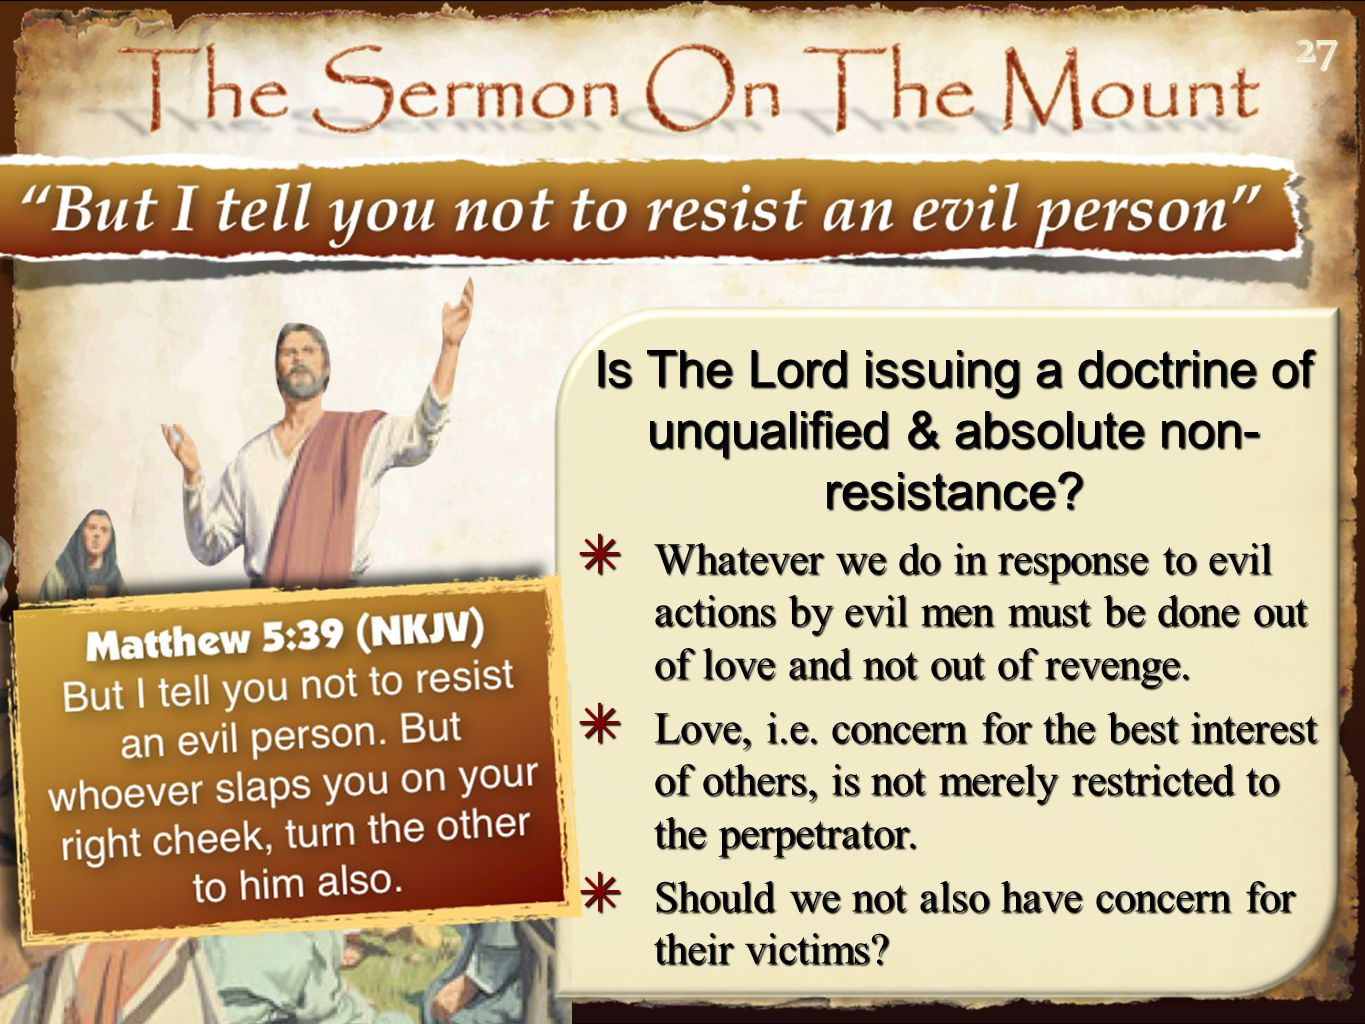 2727 Is The Lord issuing a doctrine of unqualified & absolute non- resistance.